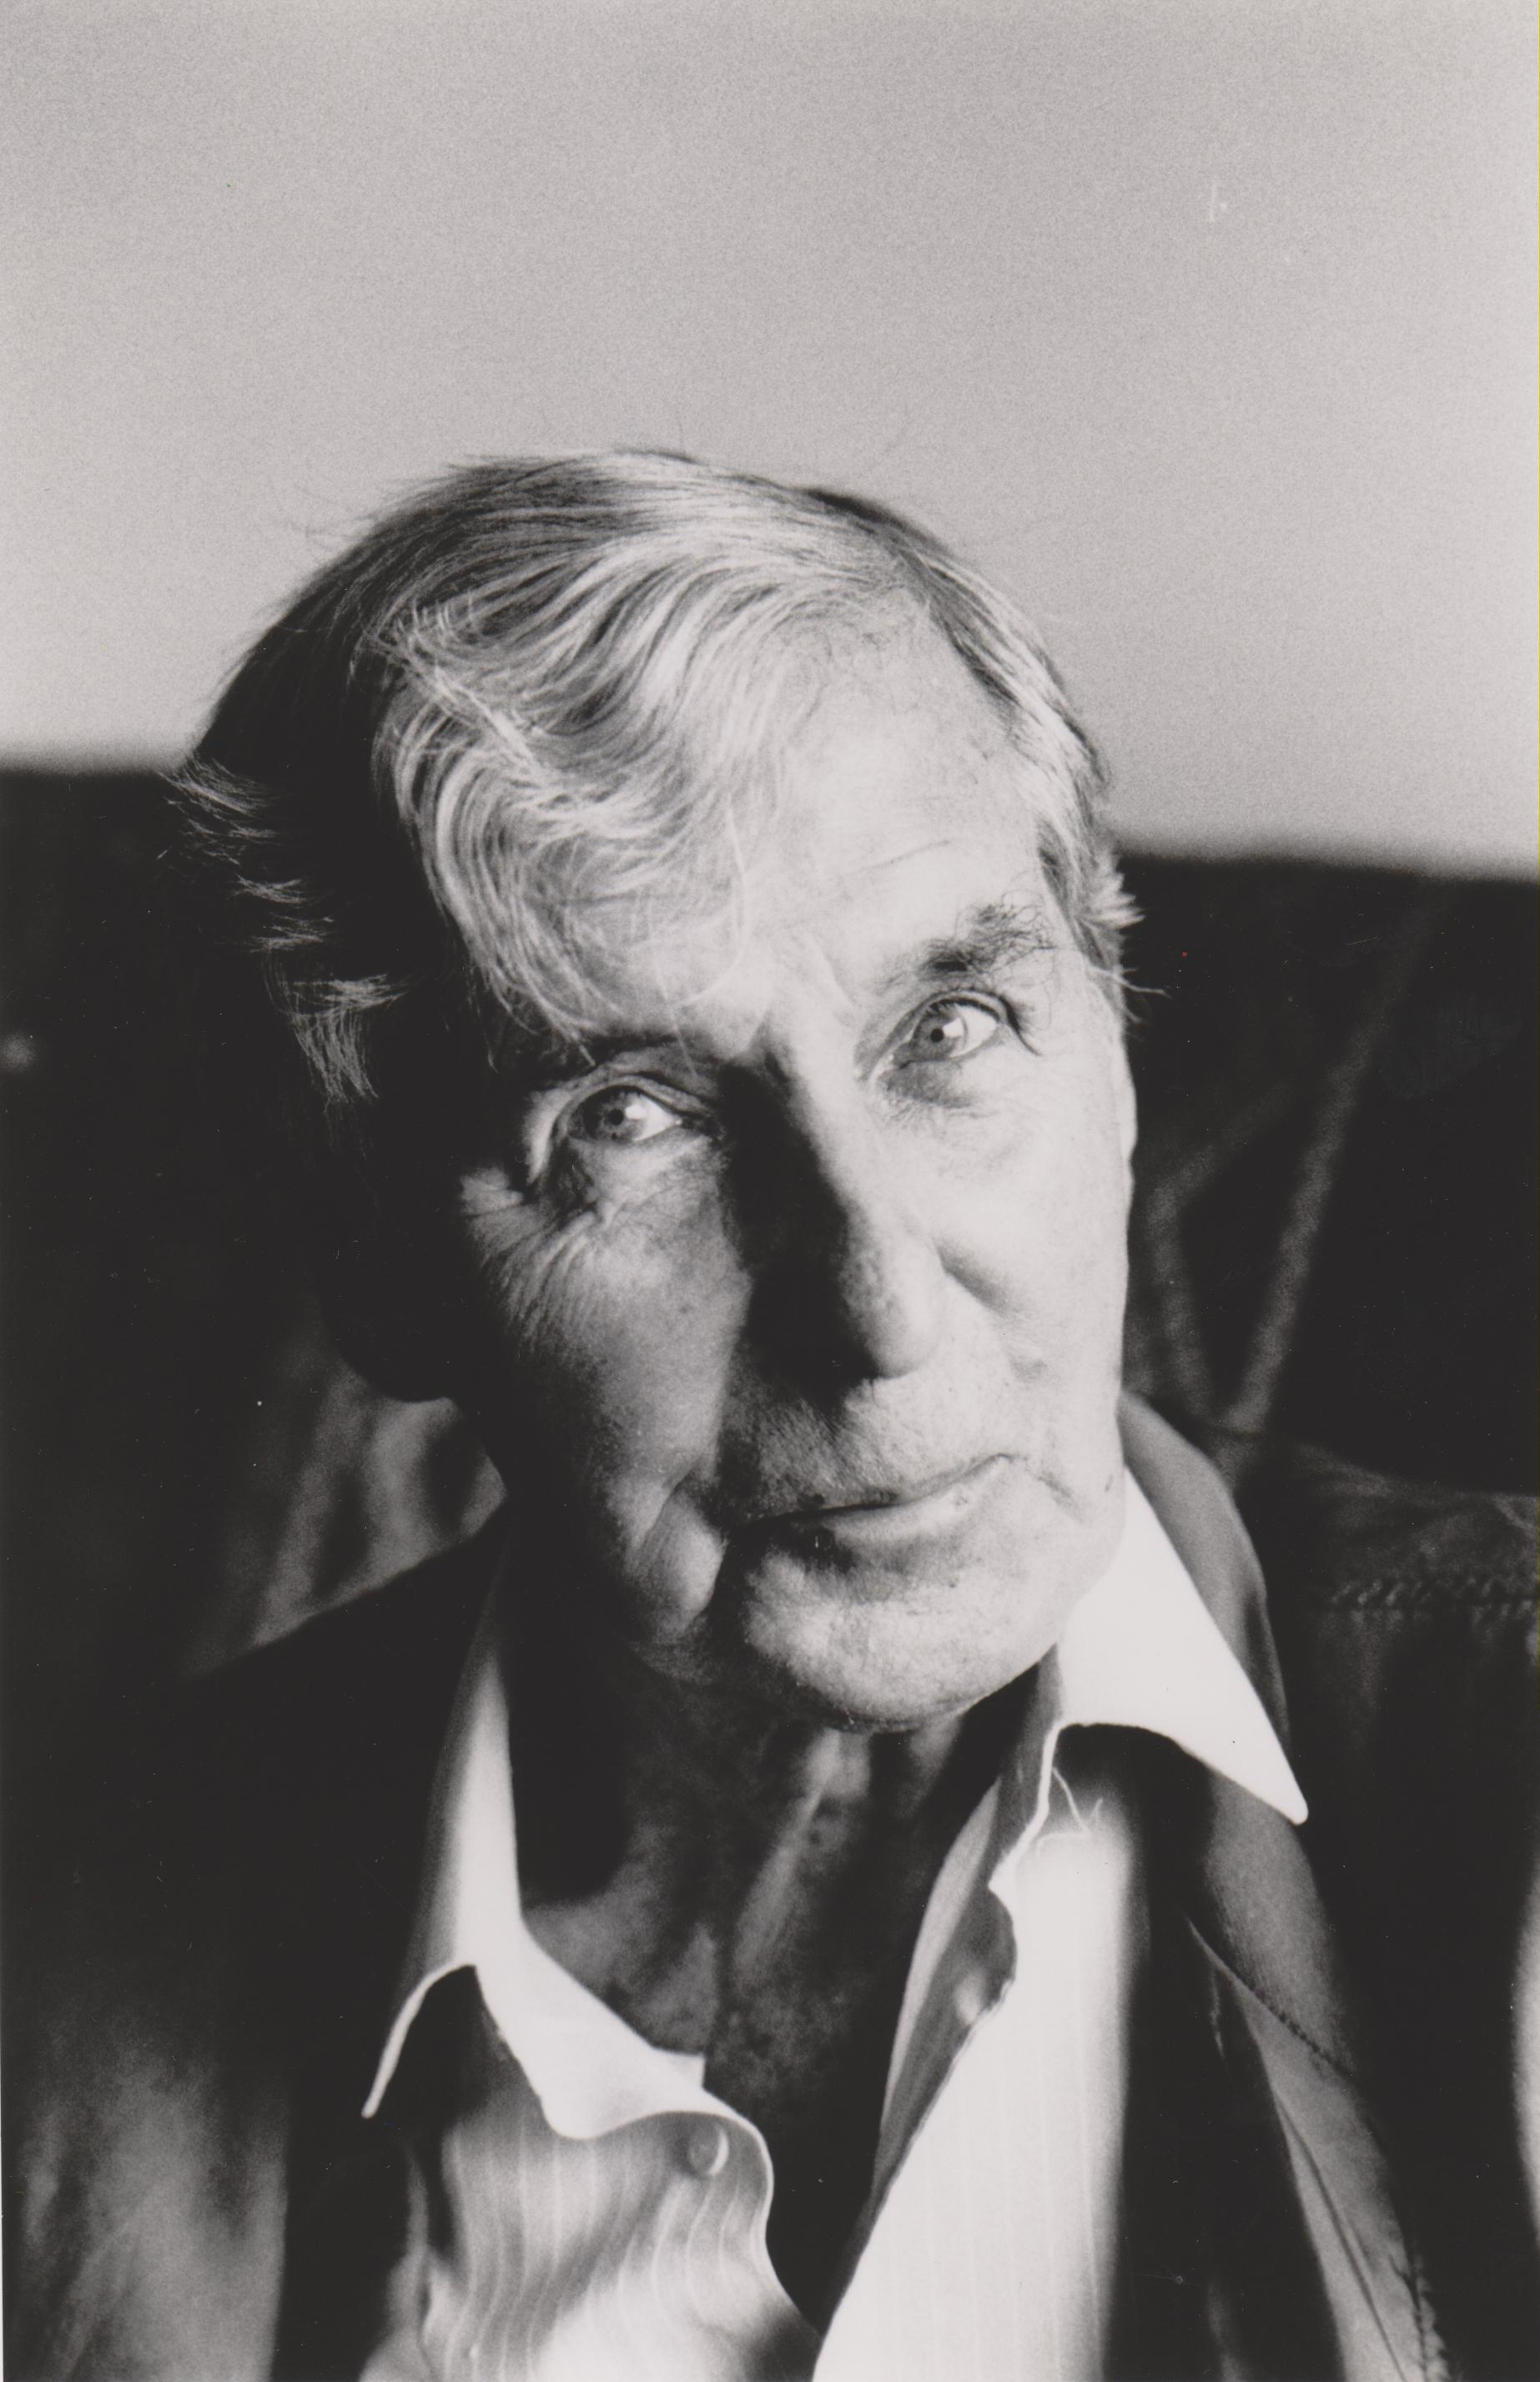 Resonate: The Rose Lake by Michael Tippett